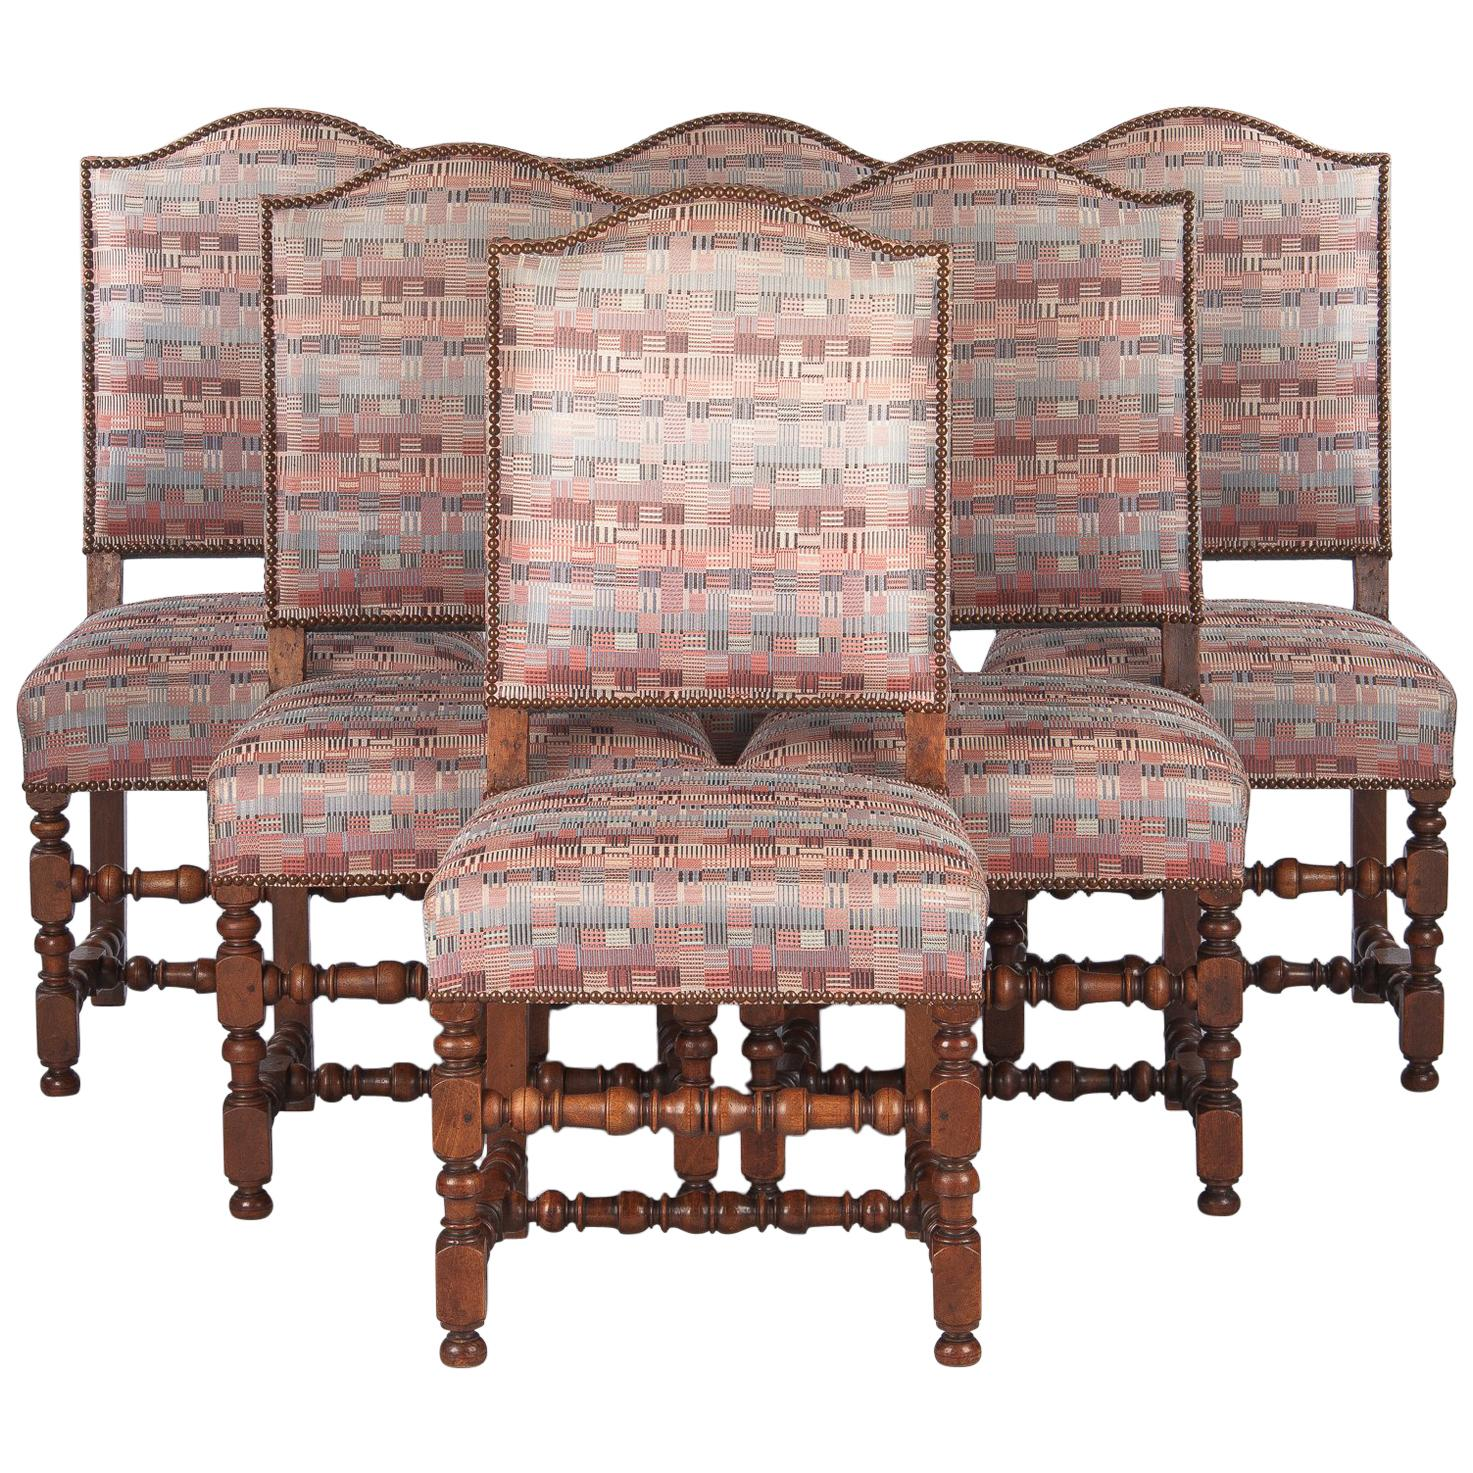 Nailhead Trim Chairs   65 For Sale On 1stdibs